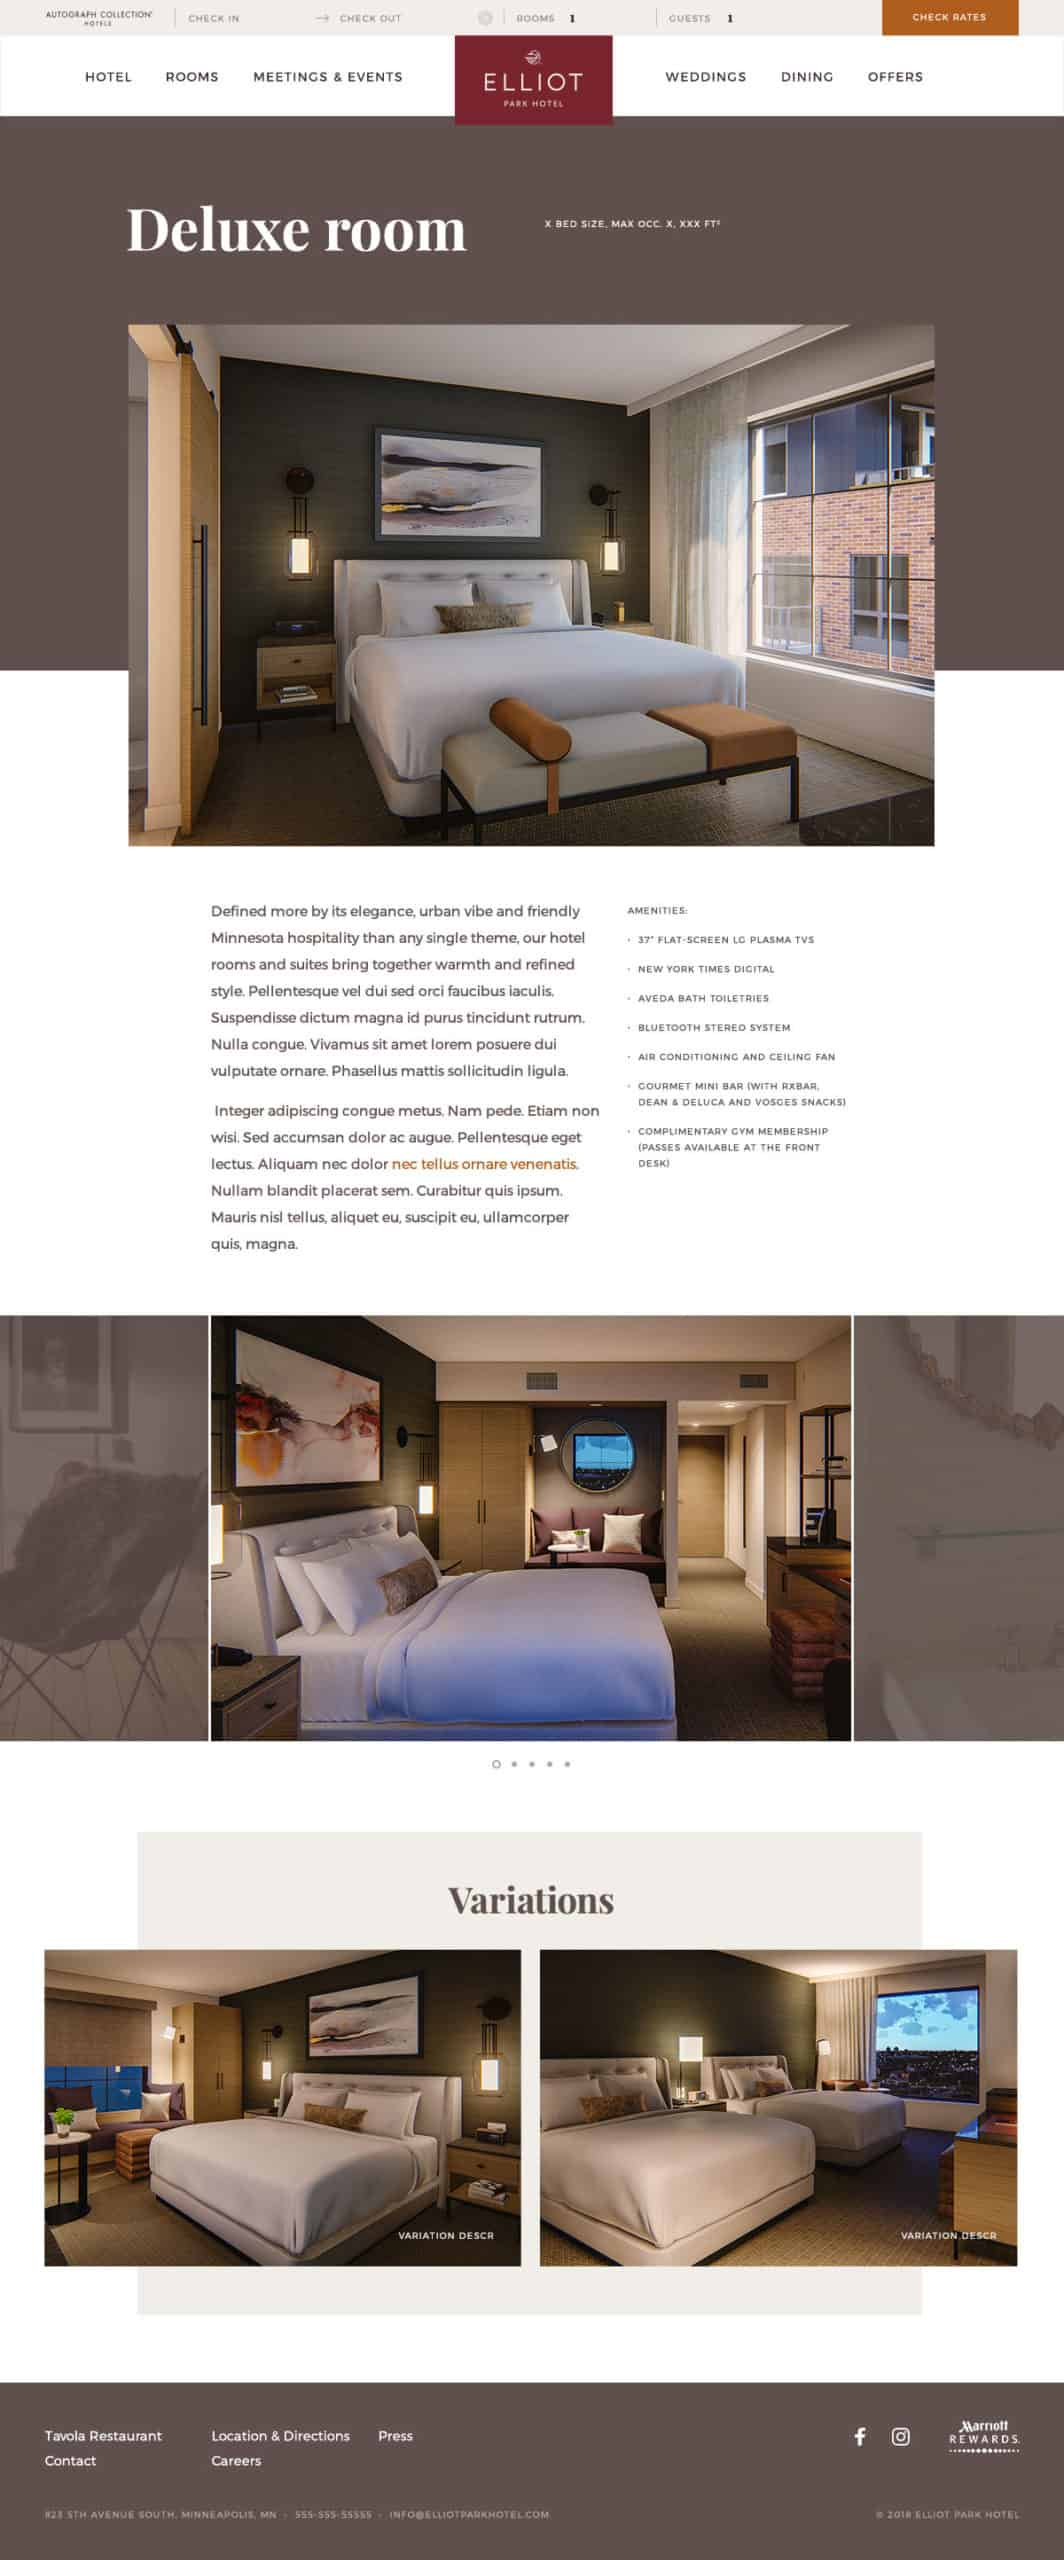 Screenshot of the Elliot Park Hotel room detail page